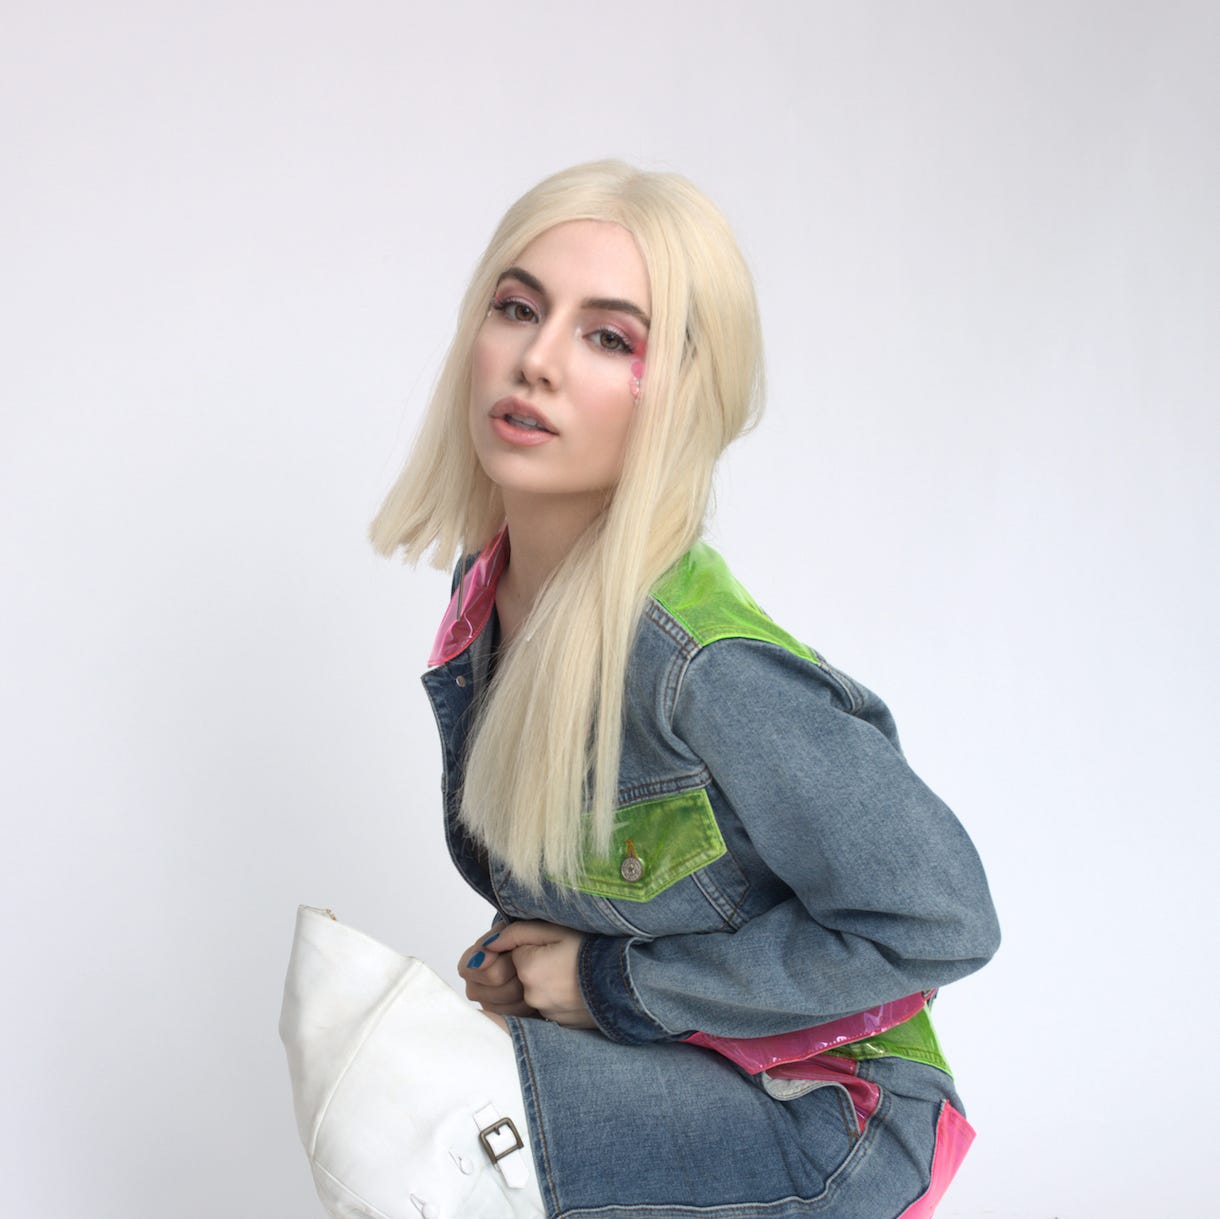 K104 Not So Silent Night: Ava Max, Charli XCX, Dinah Jane to rock Poughkeepsie